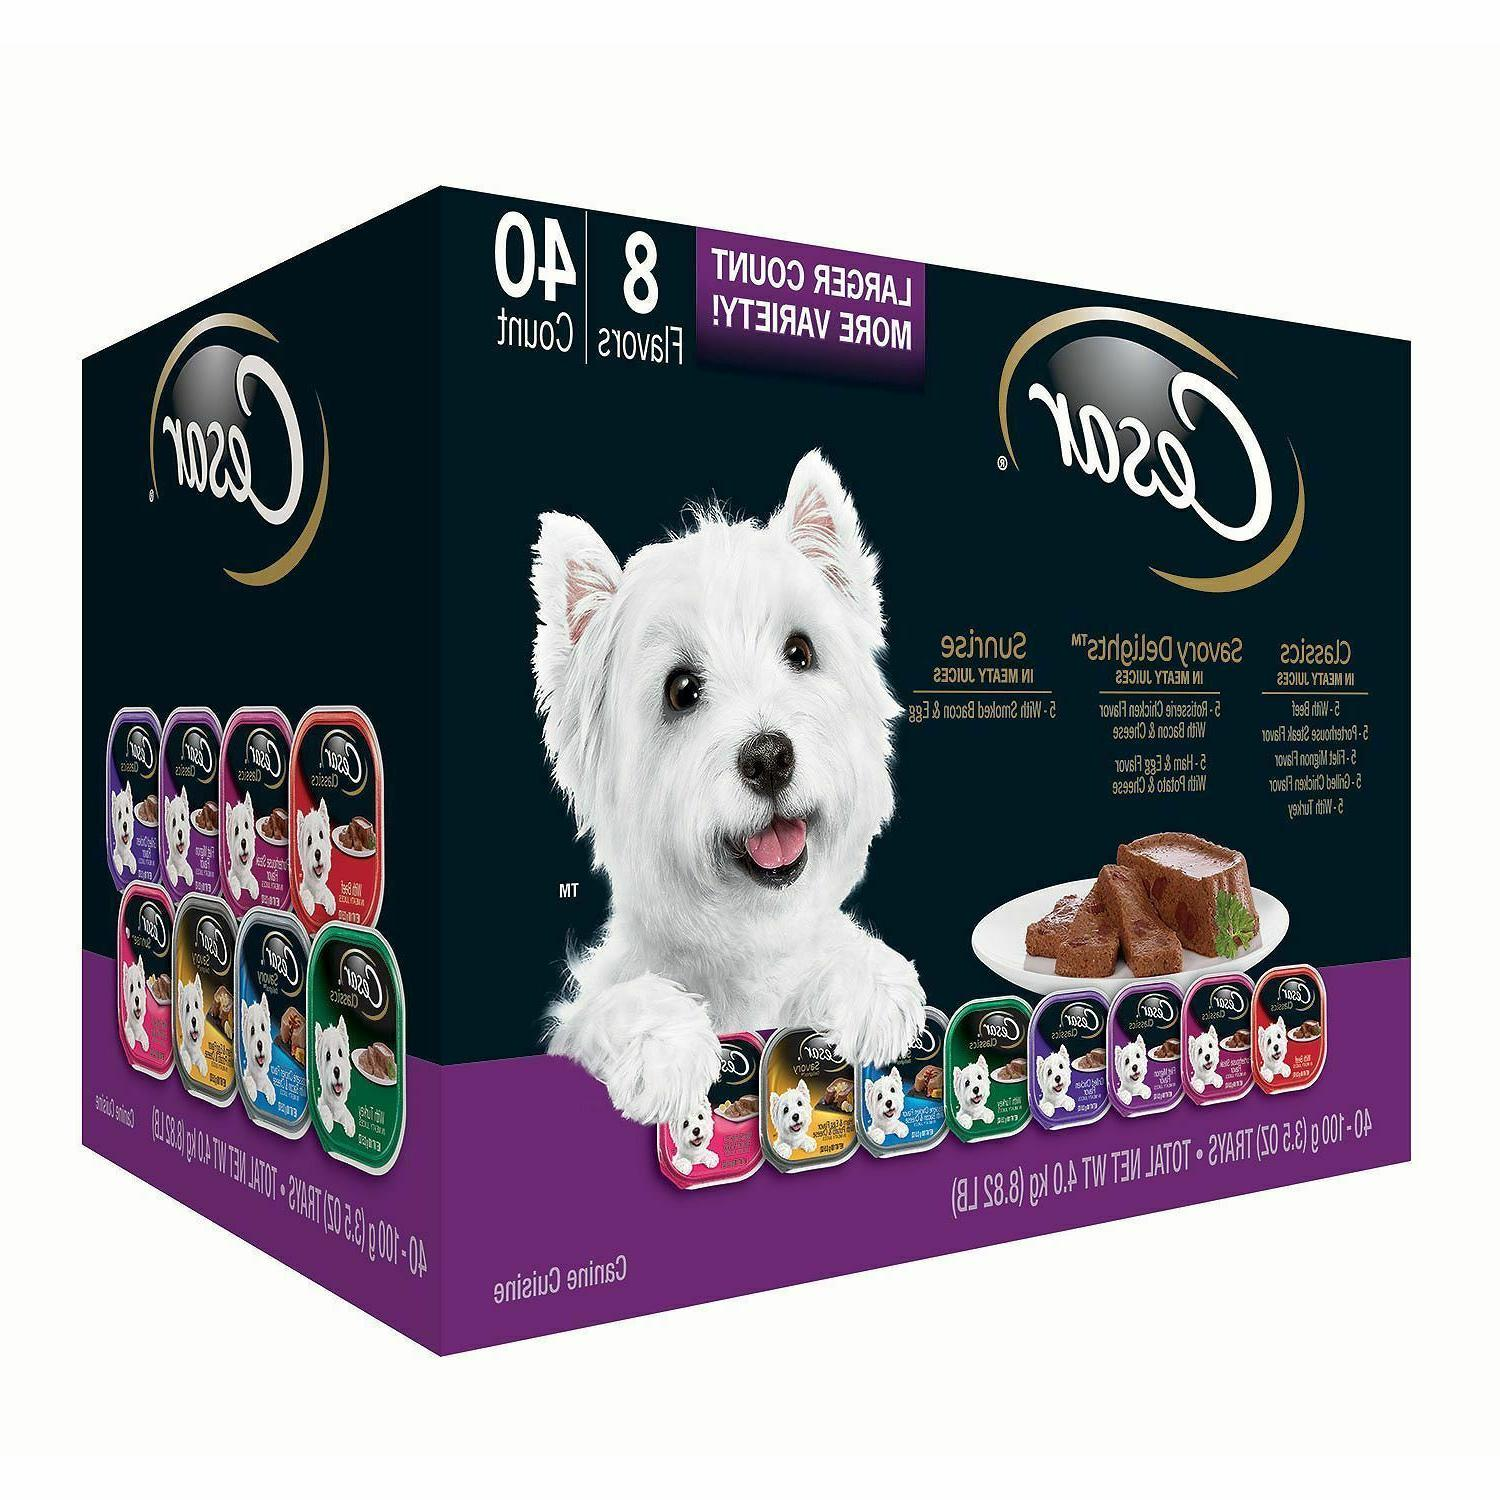 canine cuisine wet dog food variety pack